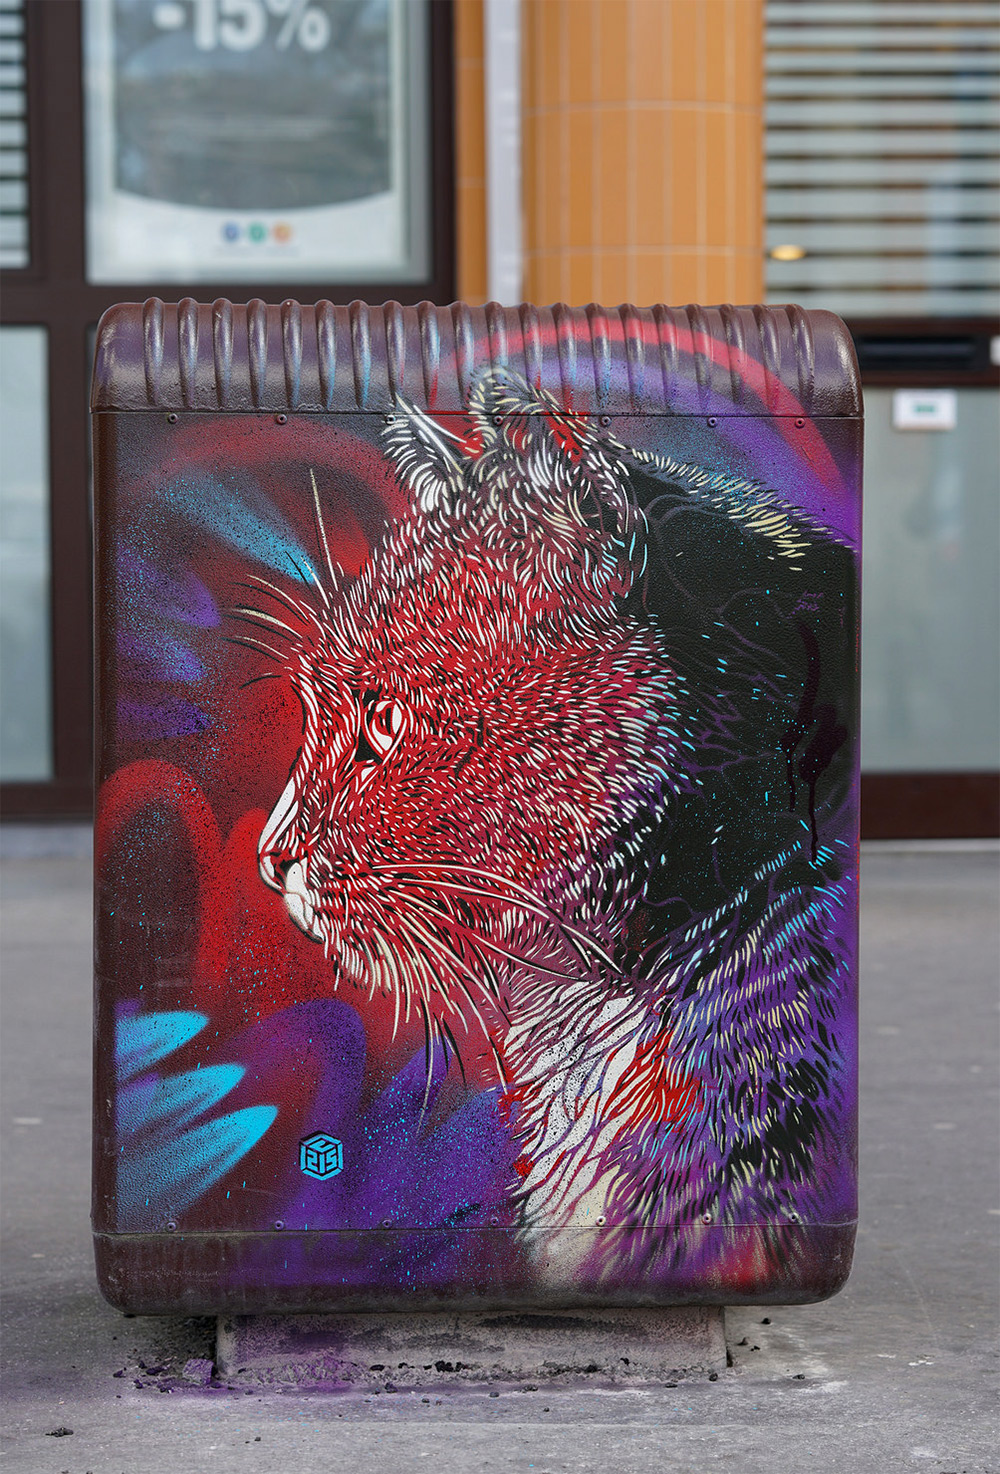 Stenciled Cats by C215 Prowl the Streets (9 pics)